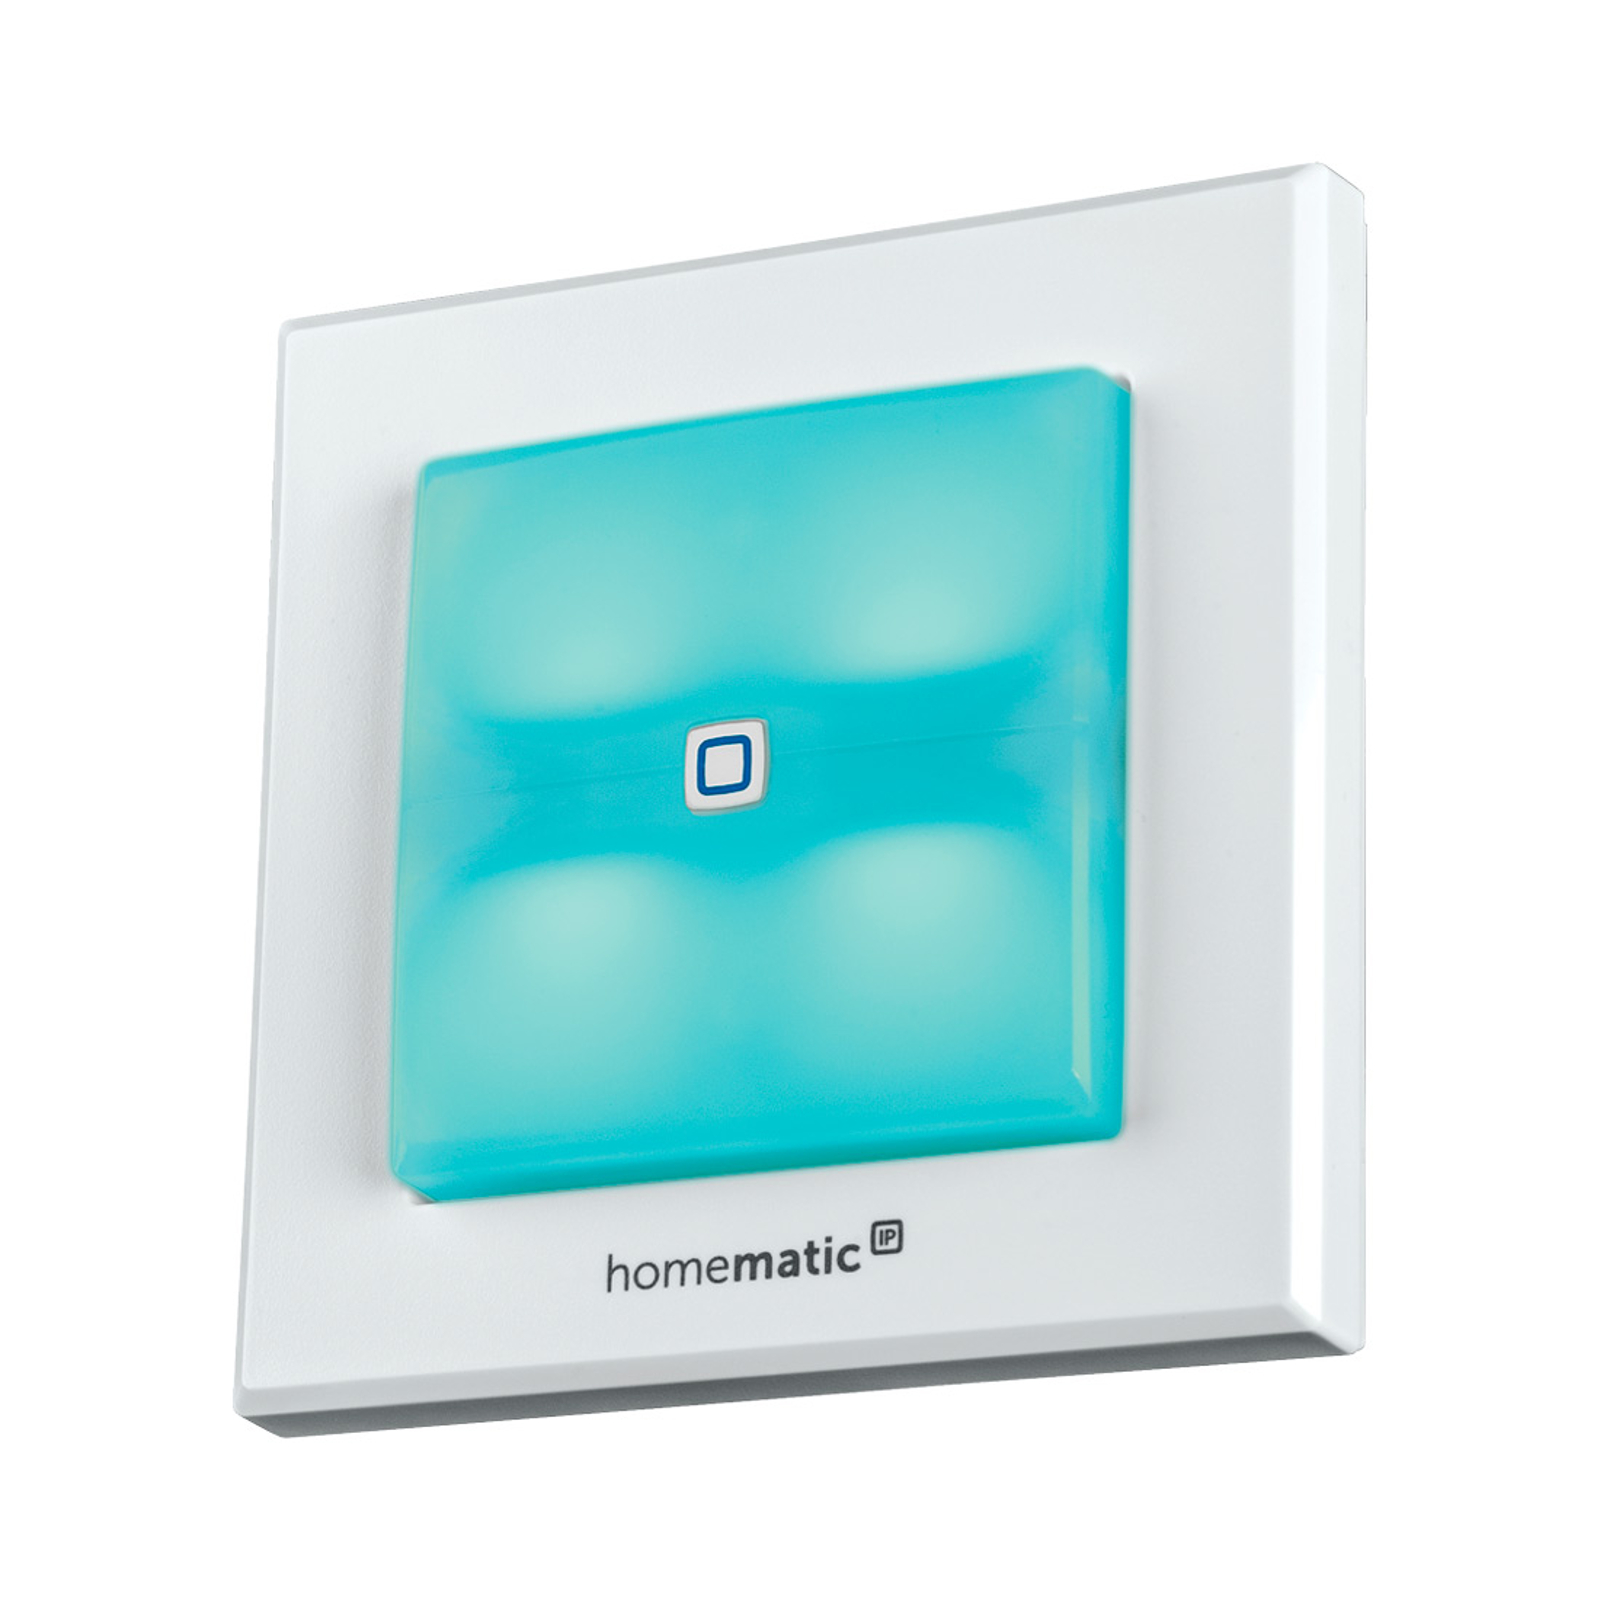 Homematic IP-bryter med signallys